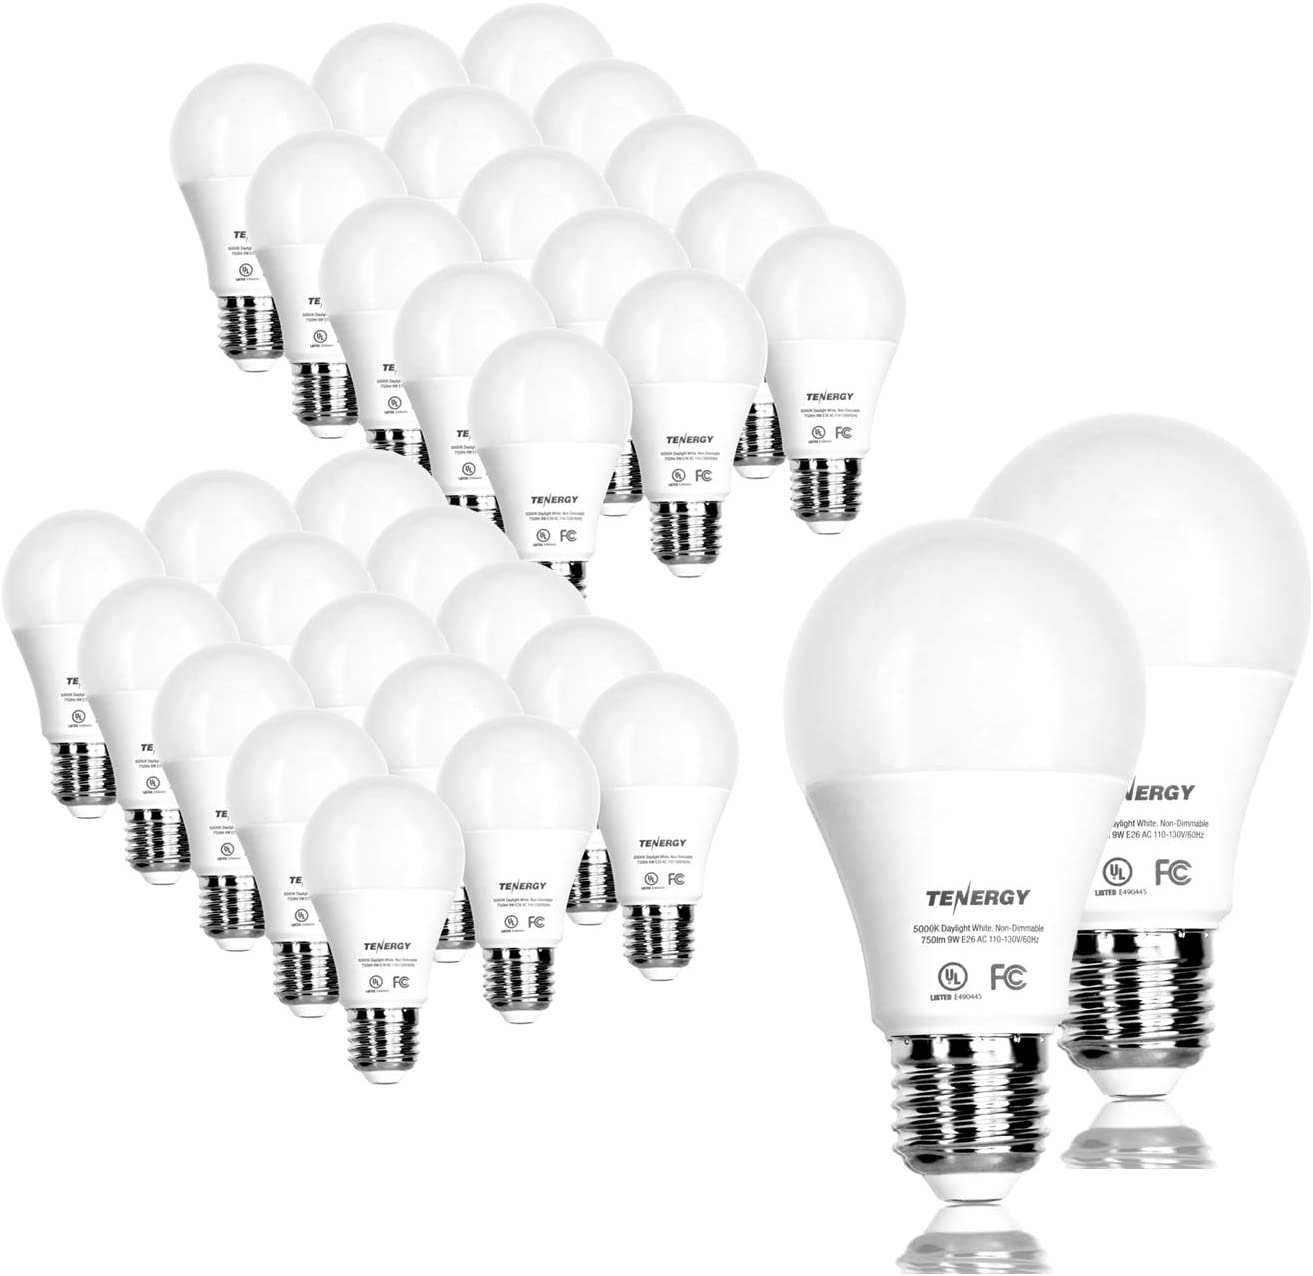 Tenergy LED Light Bulb, 9 Watts (60W Equivalent) A19 E26 Medium Standard Base, 5000K Daylight White Energy Saving Light Bulbs for Office/Home, 32-Pack, Non-Dimmable